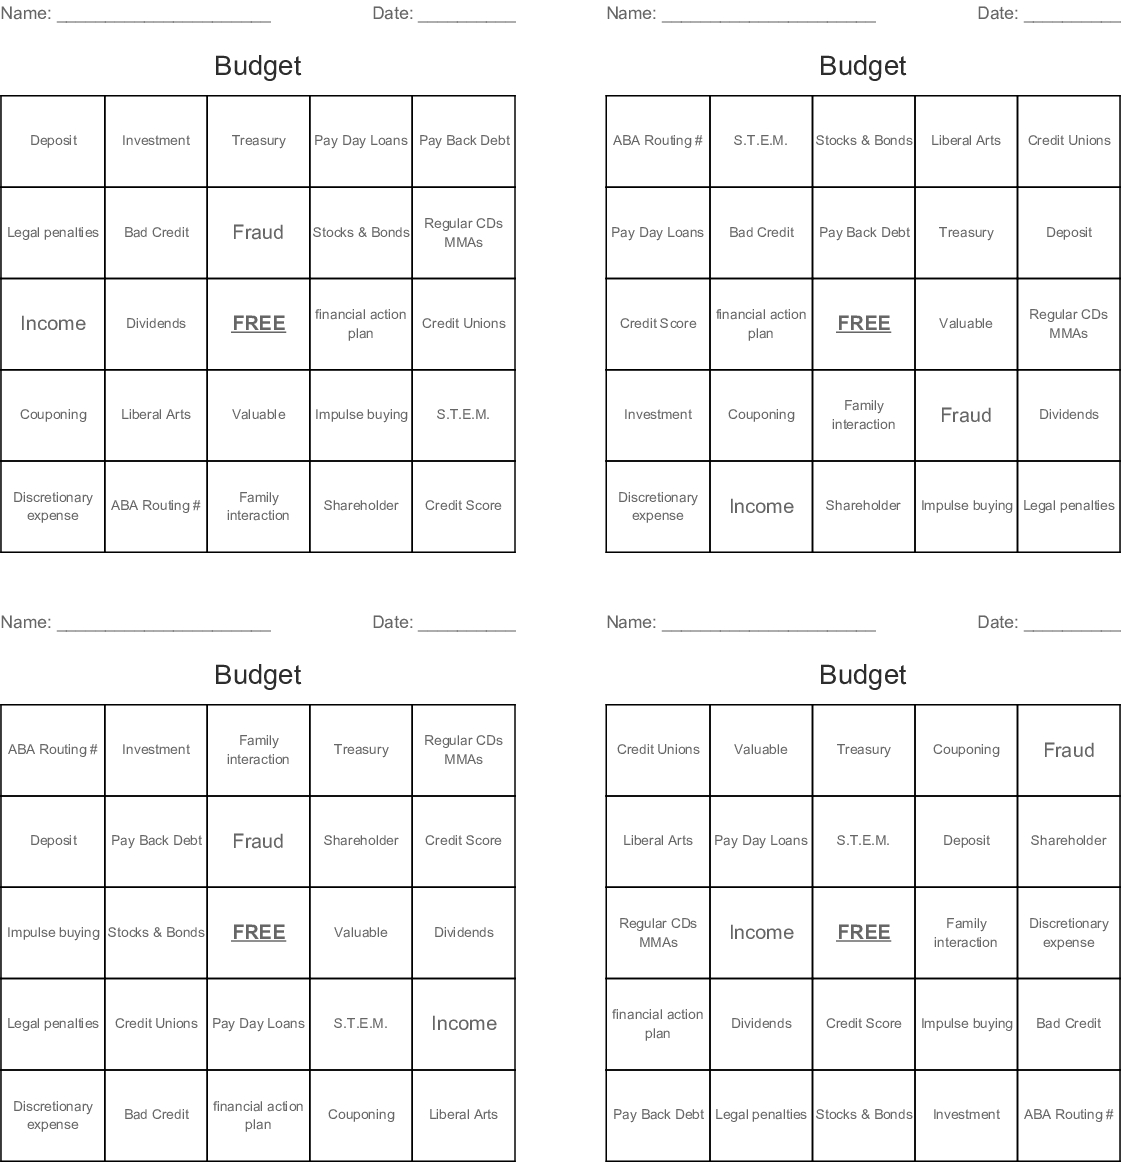 Budget Bingo Cards - Wordmint